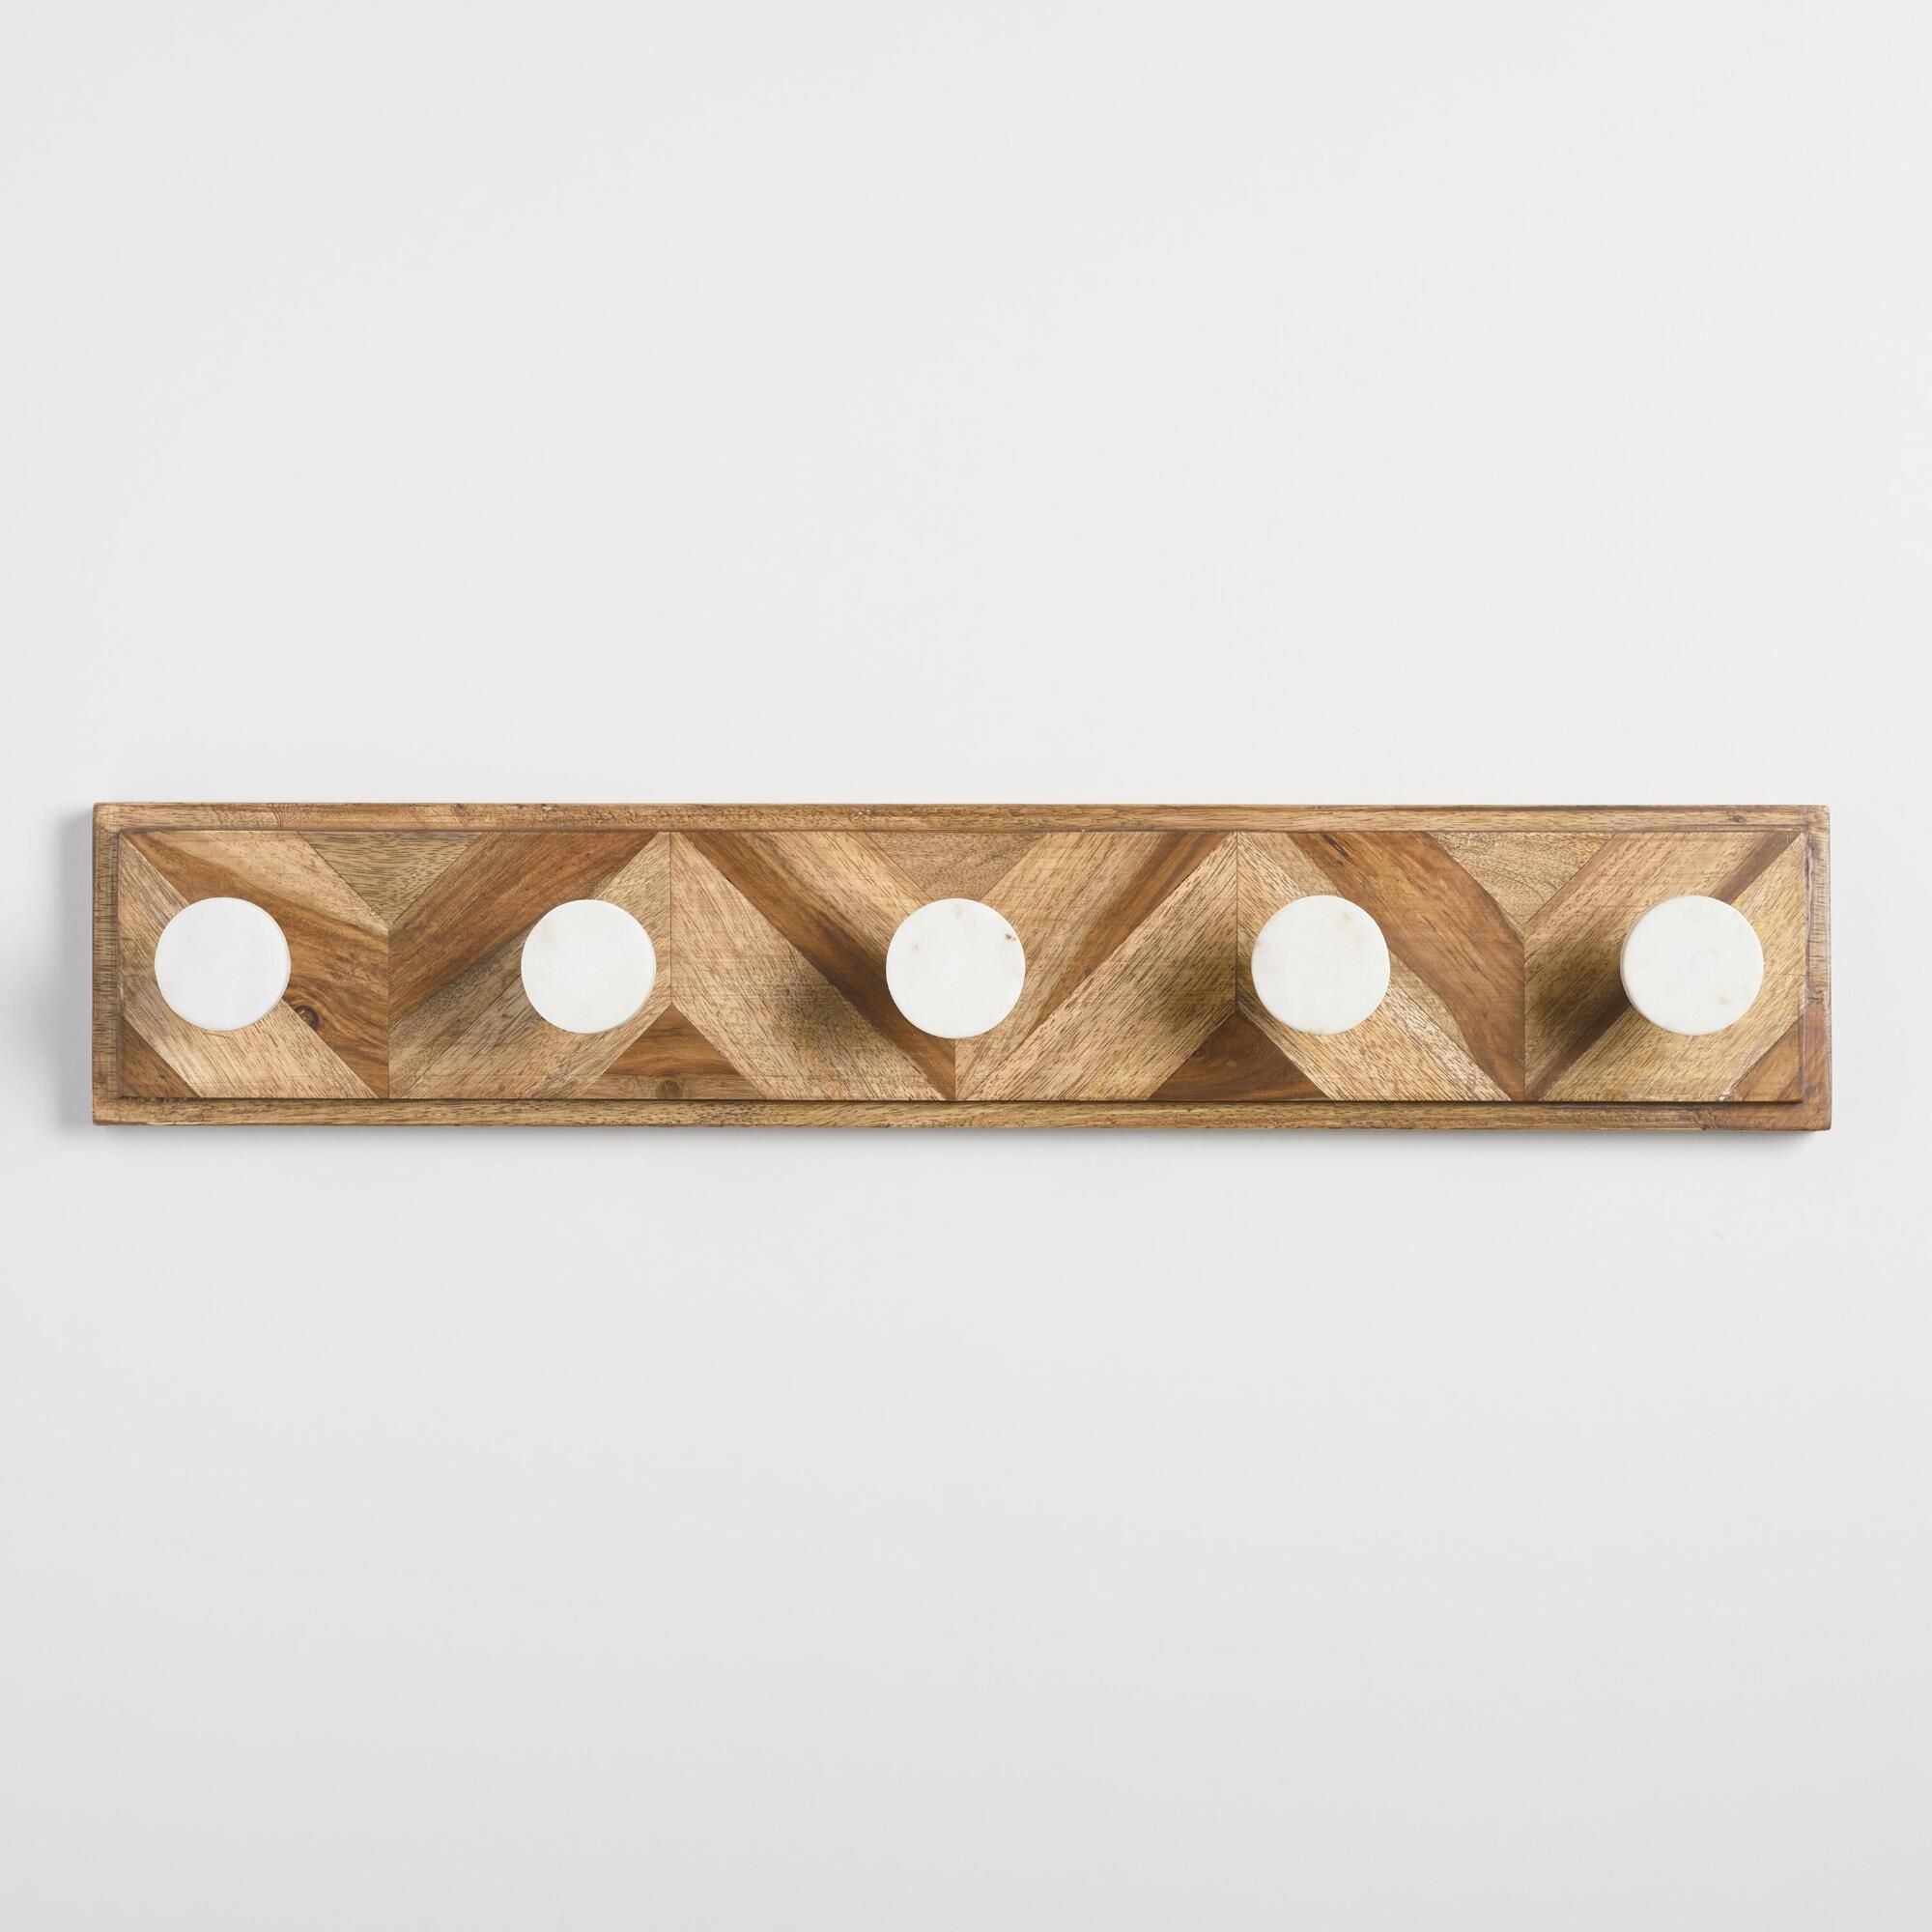 3 marble Hook Coat Rack | Coat Rack | The Wall Collective |Marble Wall Hooks